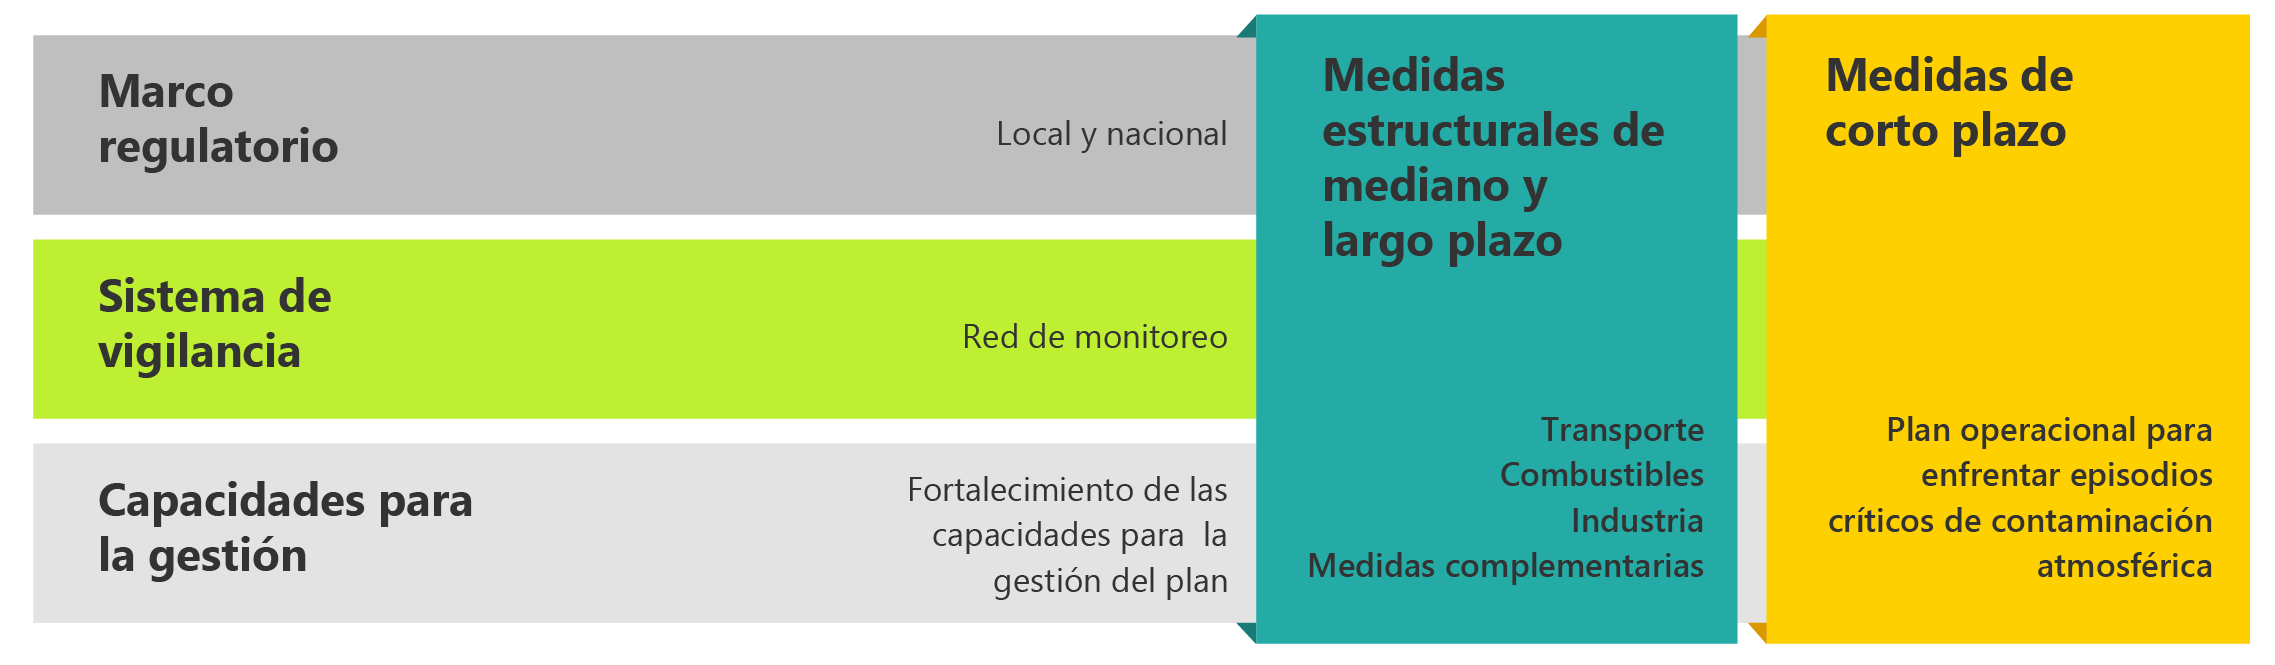 img_plan_de_descontaminacion.png